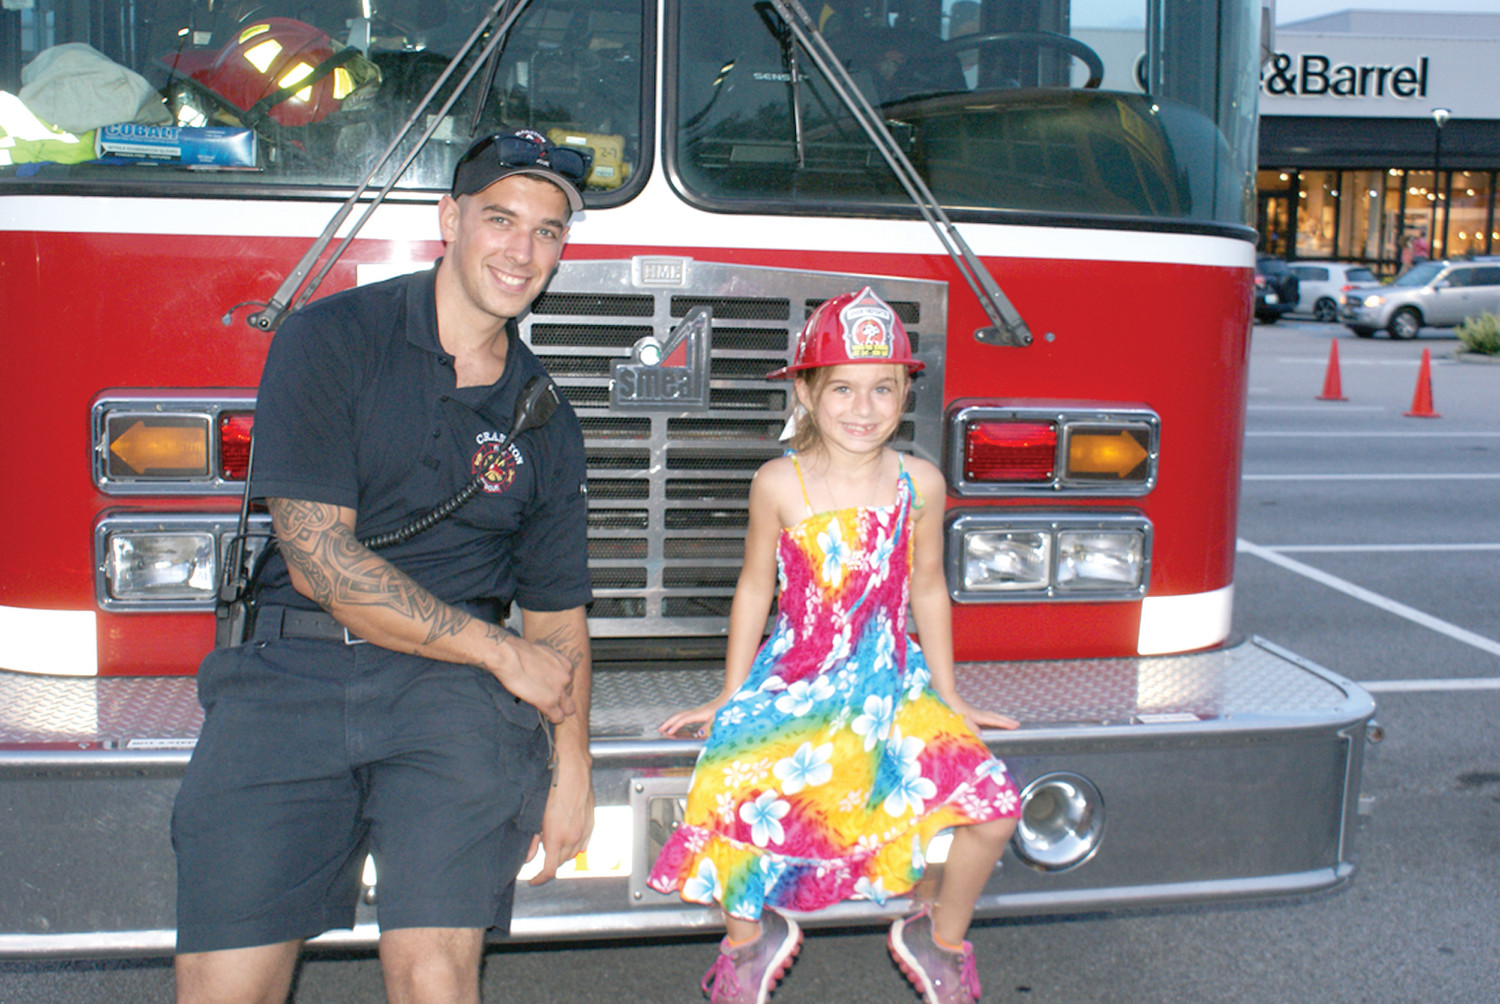 NEW FRIENDS: Cranston Probationary Firefighter Bryan Wall from the Garden City Fire Station enjoyed making a new friend in Gianna Carrara, age 7, during National Police Night Out as they sat on the bumper of Ladder 2.